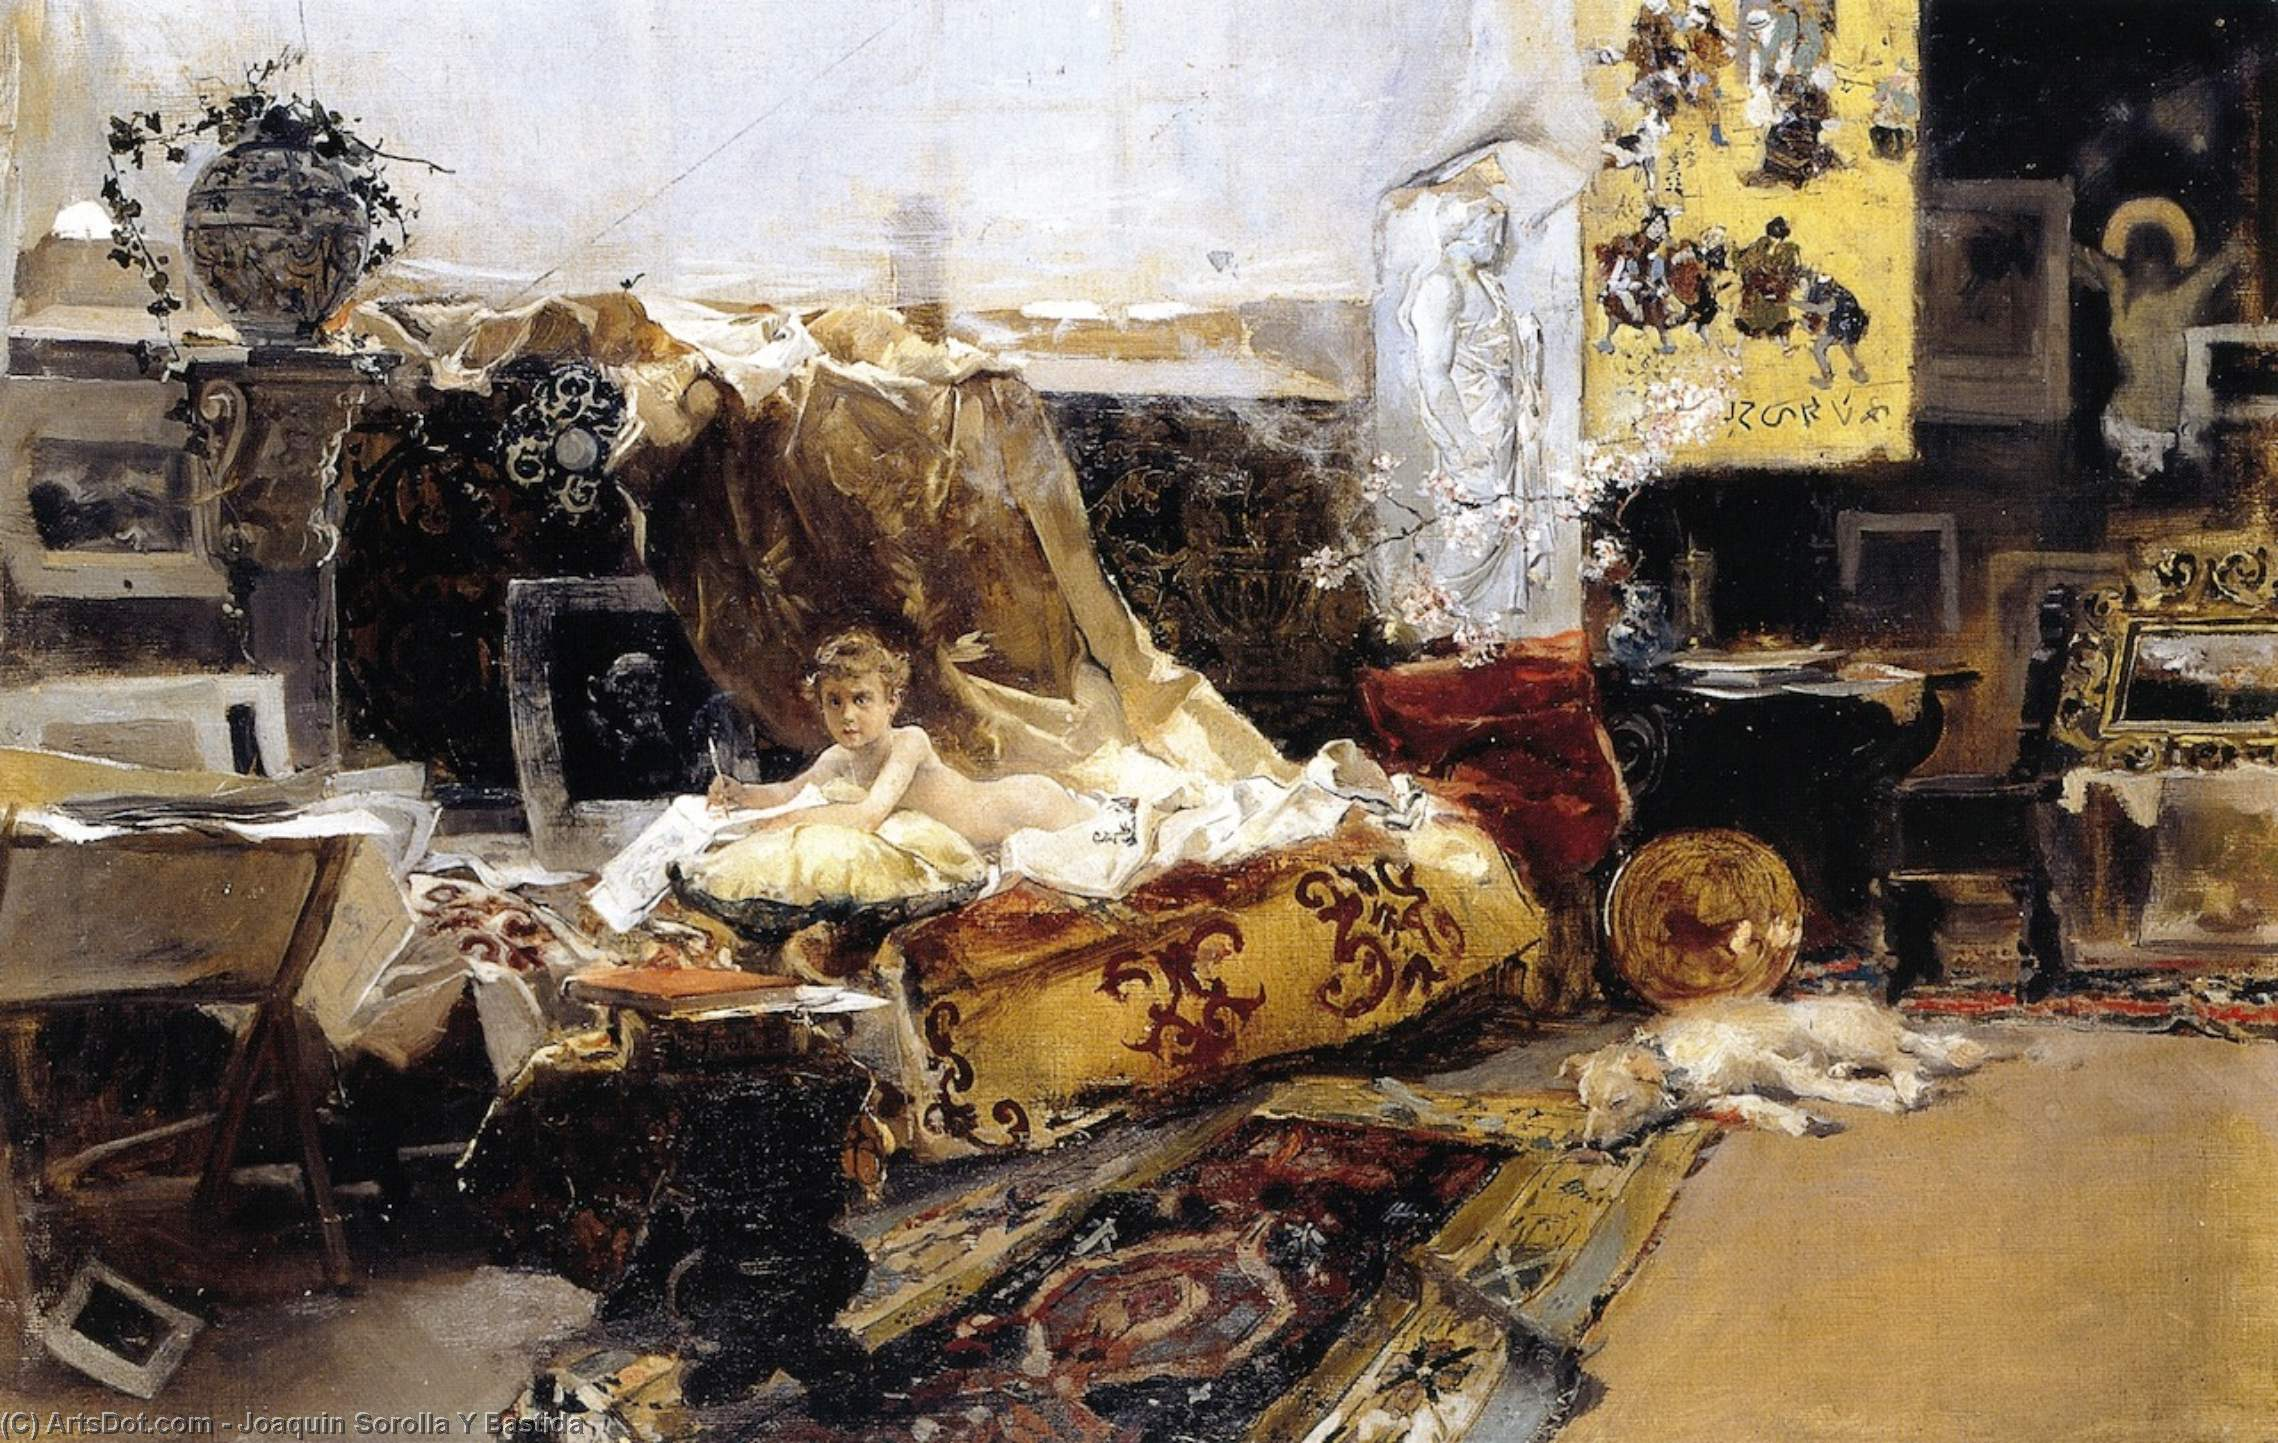 The Painter's Studio, Oil On Canvas by Joaquin Sorolla Y Bastida (1863-1923, Spain)